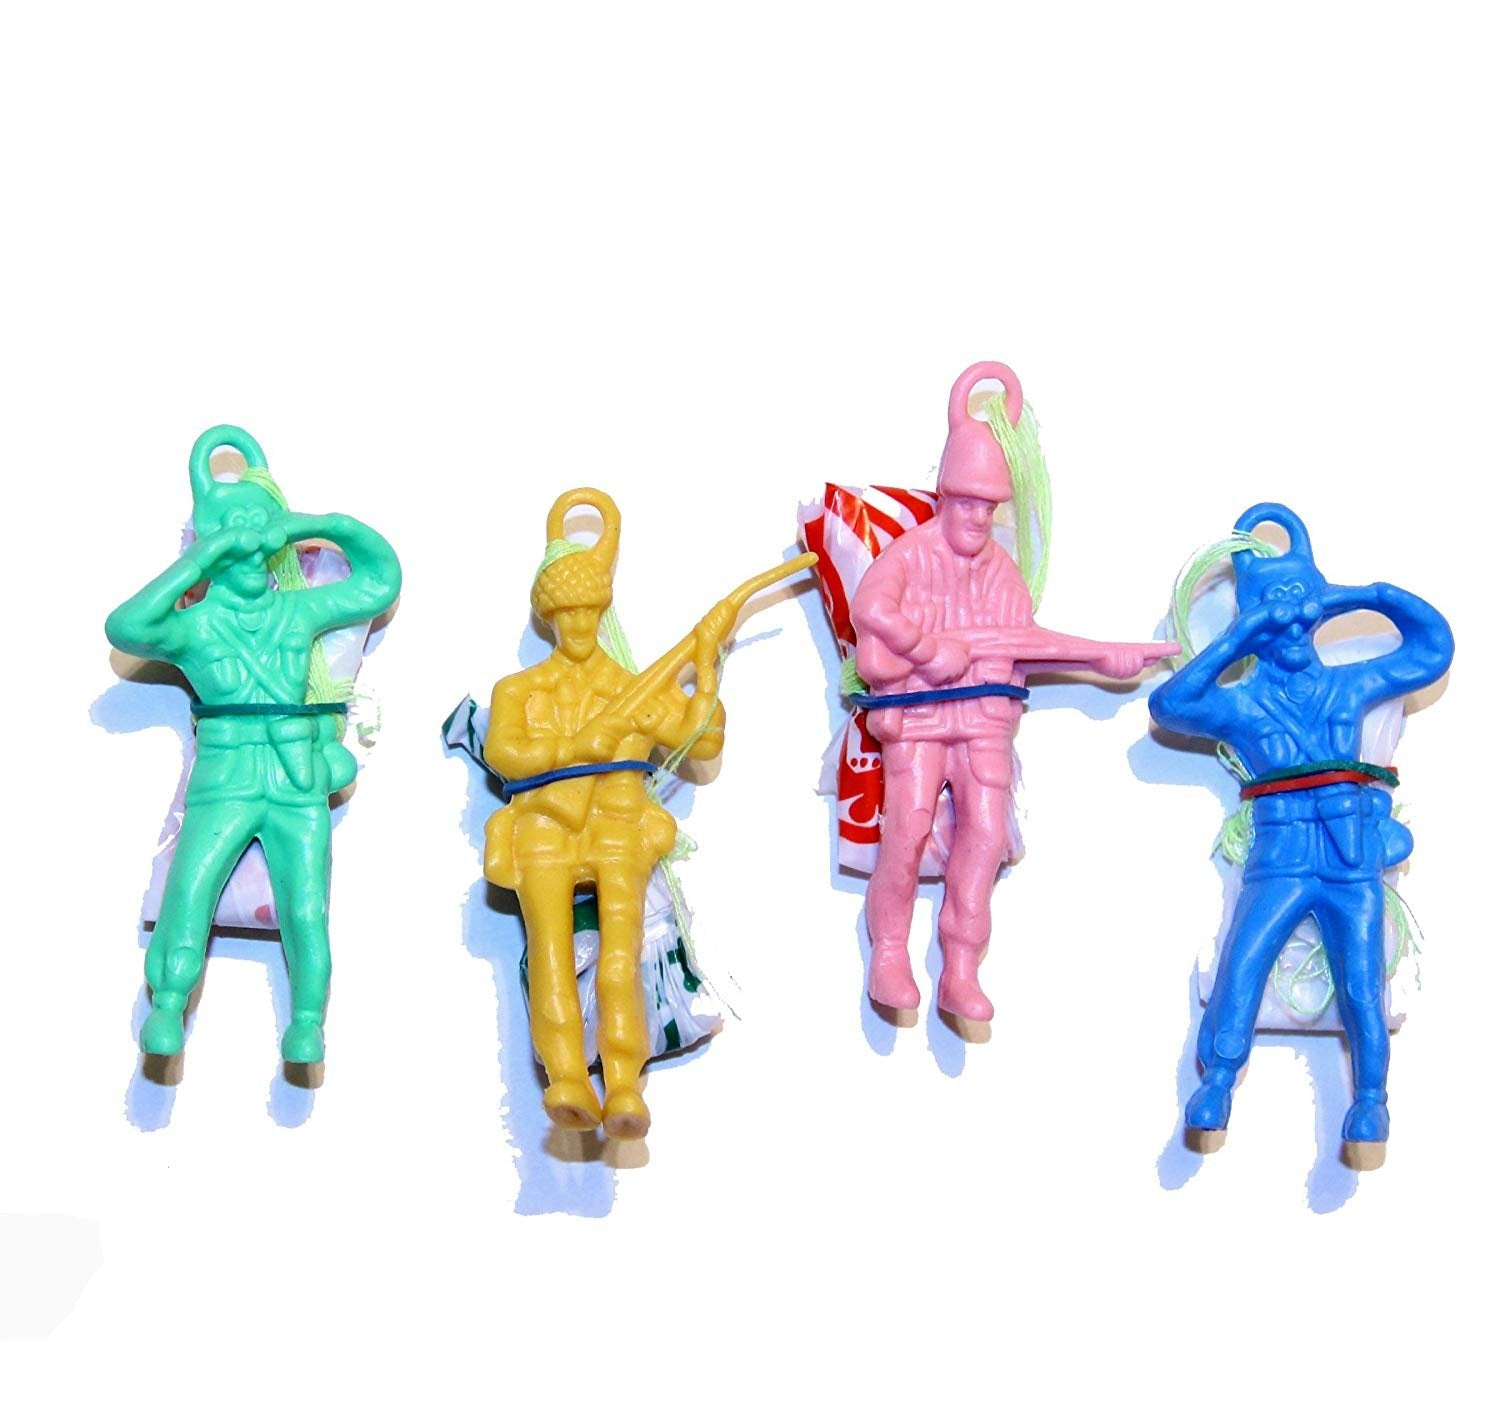 72 Pack Dazzling Toys Vinyl Paratroopers Assortment Bulk (6 Dozen) Makes a Nice Decoration to Any Matching Themed Party